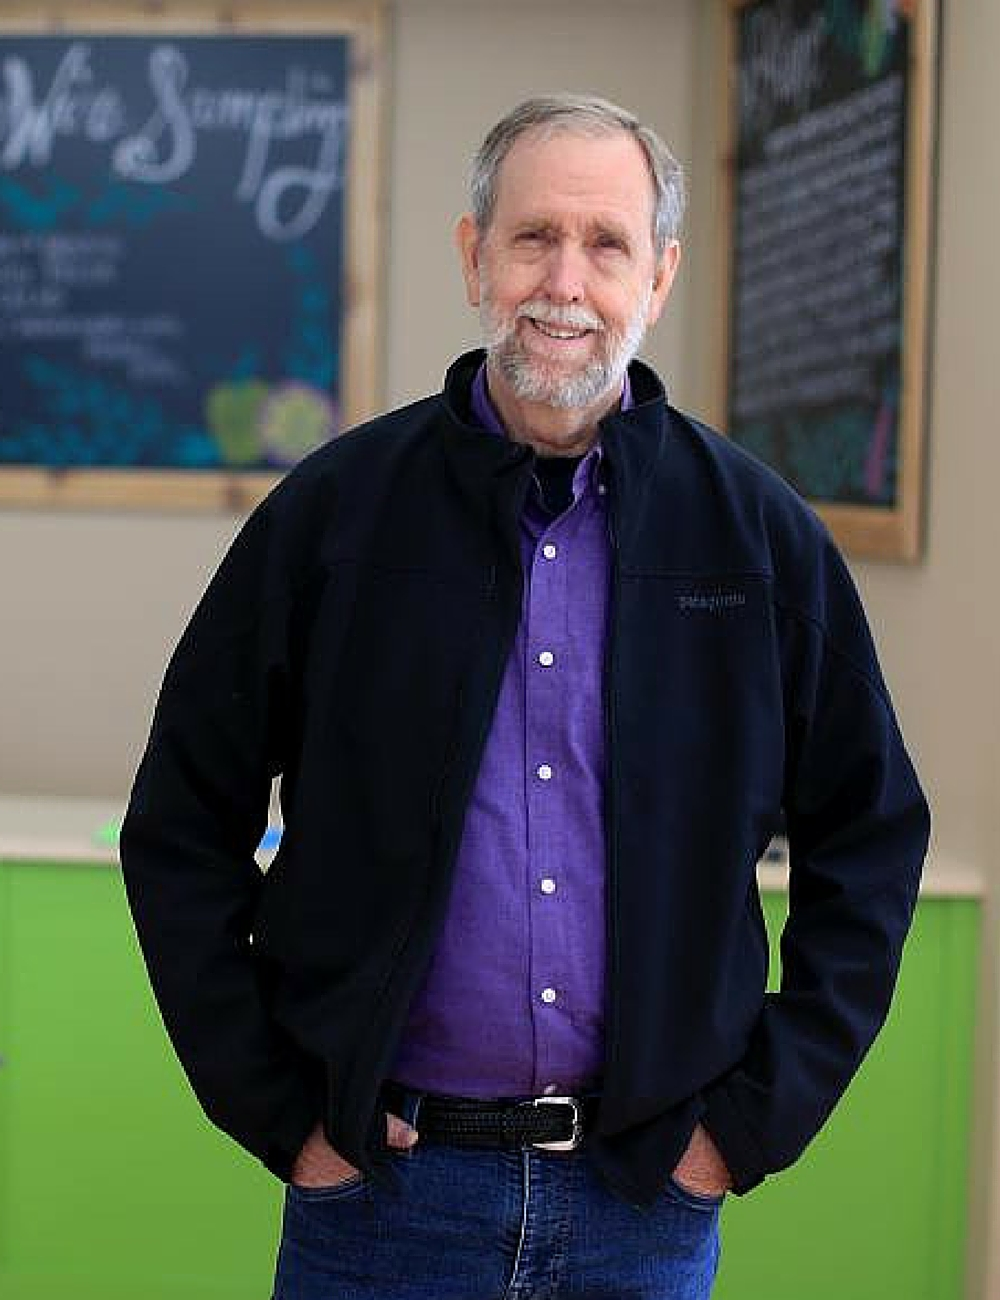 Doug Rauch Former President of Trader Joe's Company, CEO of Conscious Capitalism, and Founder/President of Daily Table, an innovative non-profit retail store working to recover food and provide affordable nutrition to the food insecure in our inner cities.